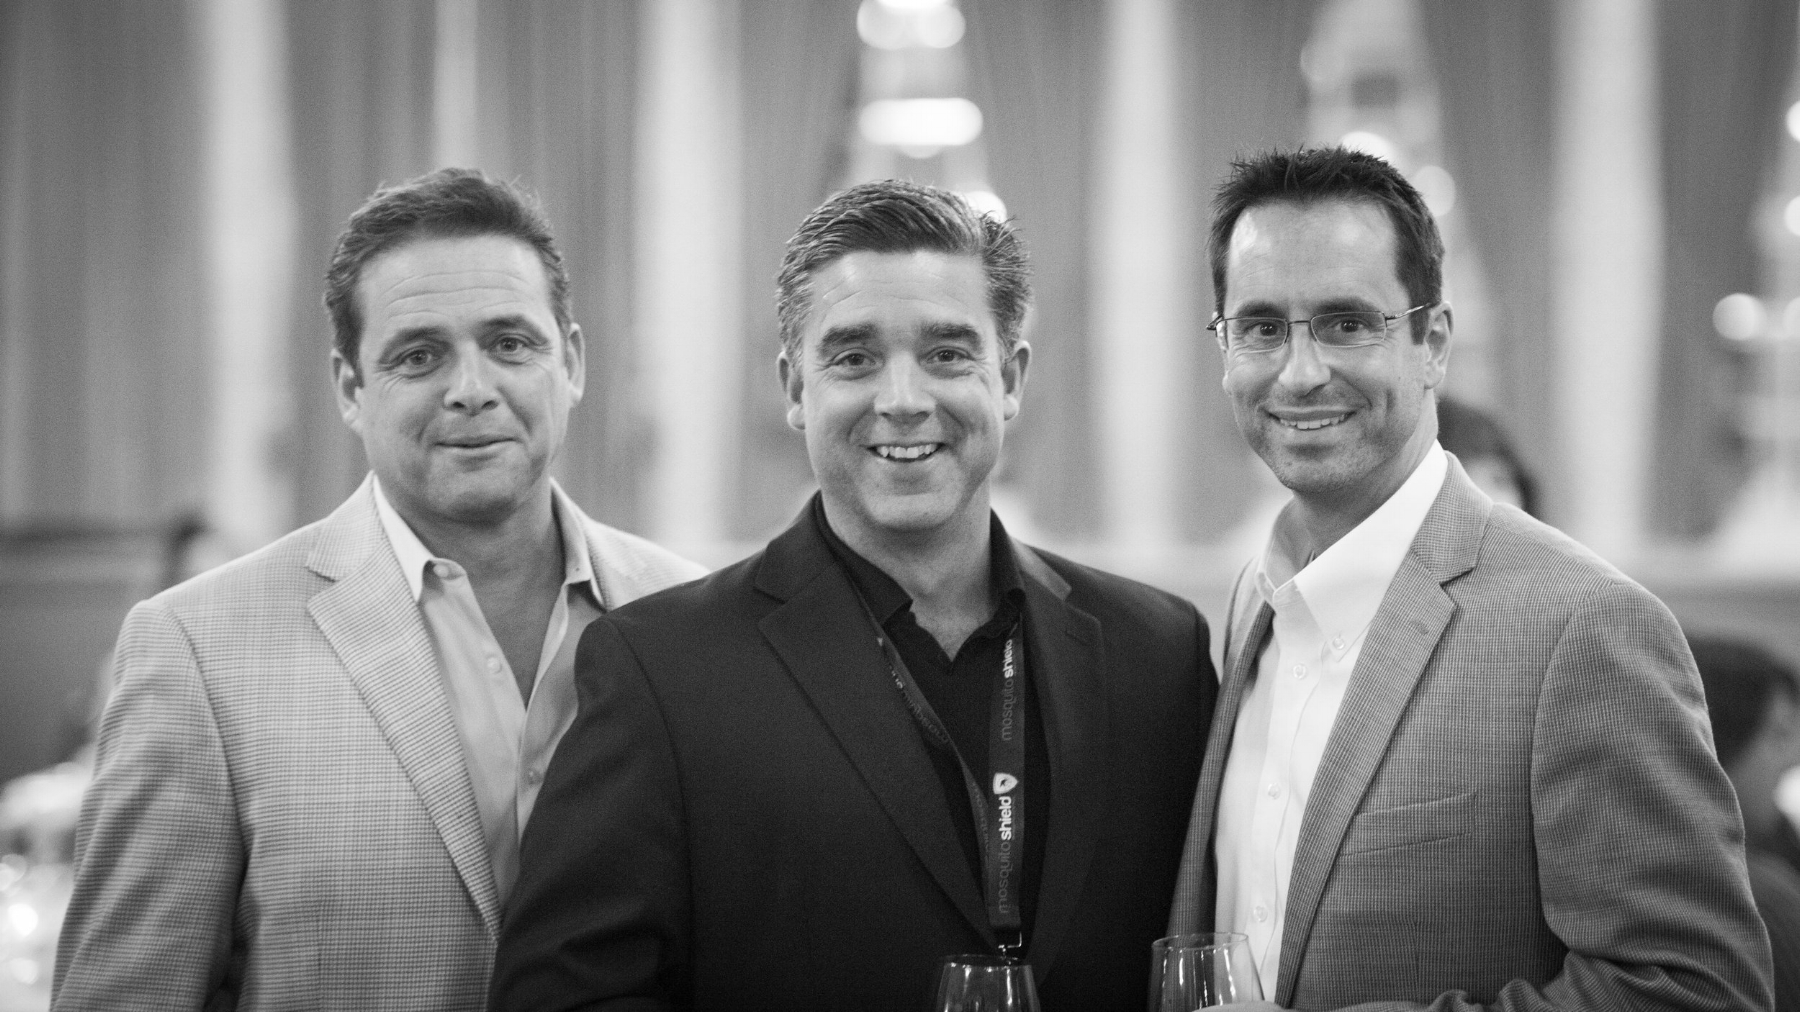 L to R David Briggs – Founder/President, Brad Maher – VP of Operations, Michael Moorhouse – VP of Sales and Marketing